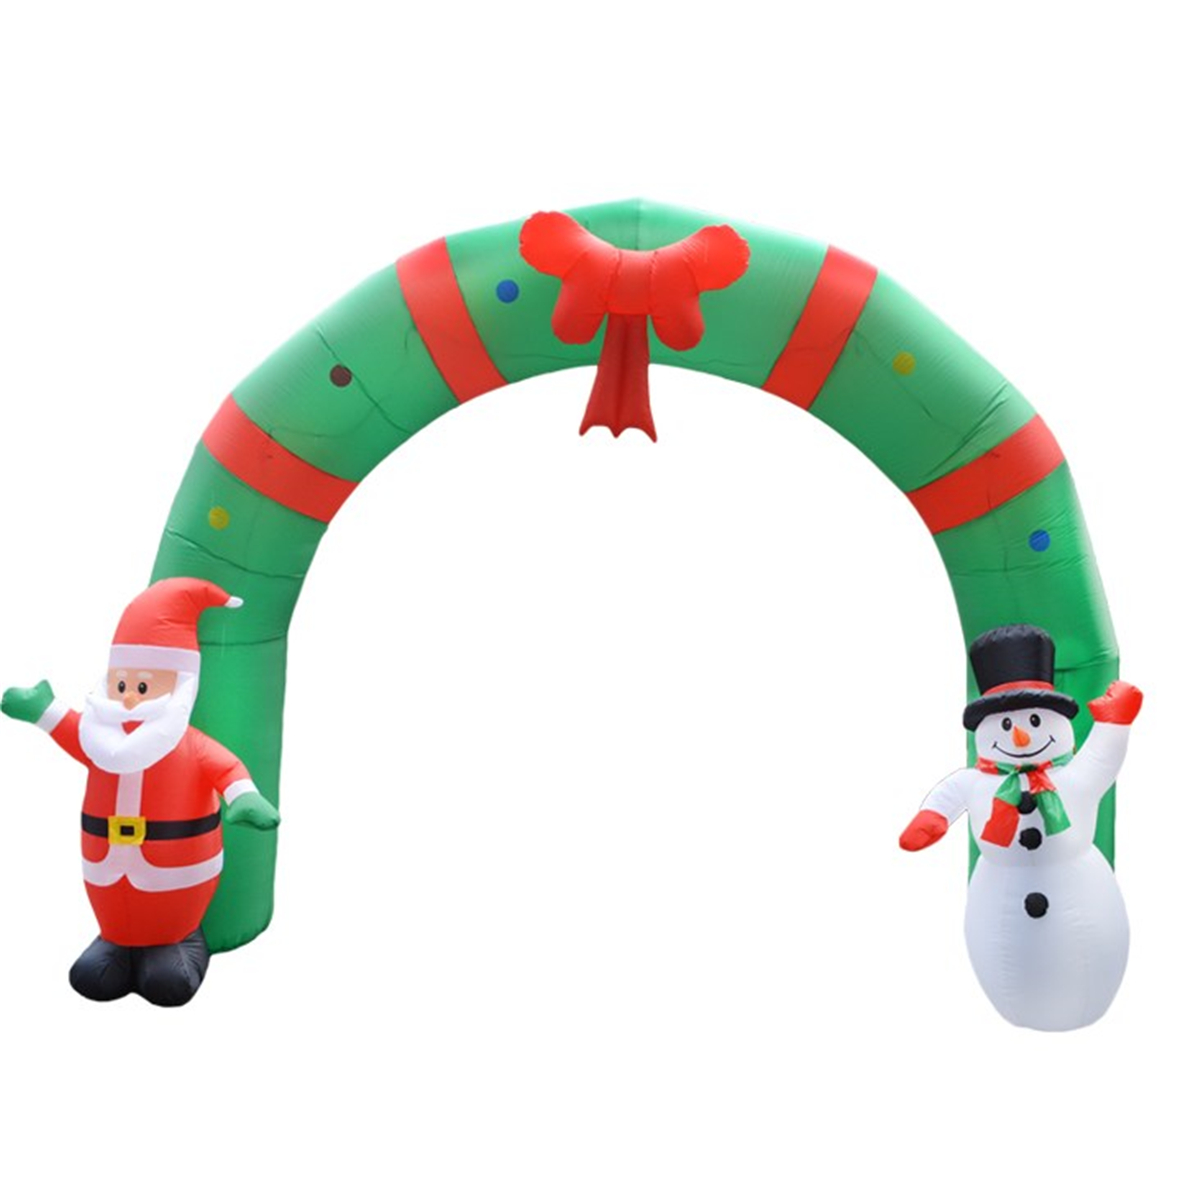 250cm Huge Inflatable Christmas Arch ArchwaySanta Snowman Indoor Outdoor Decorations